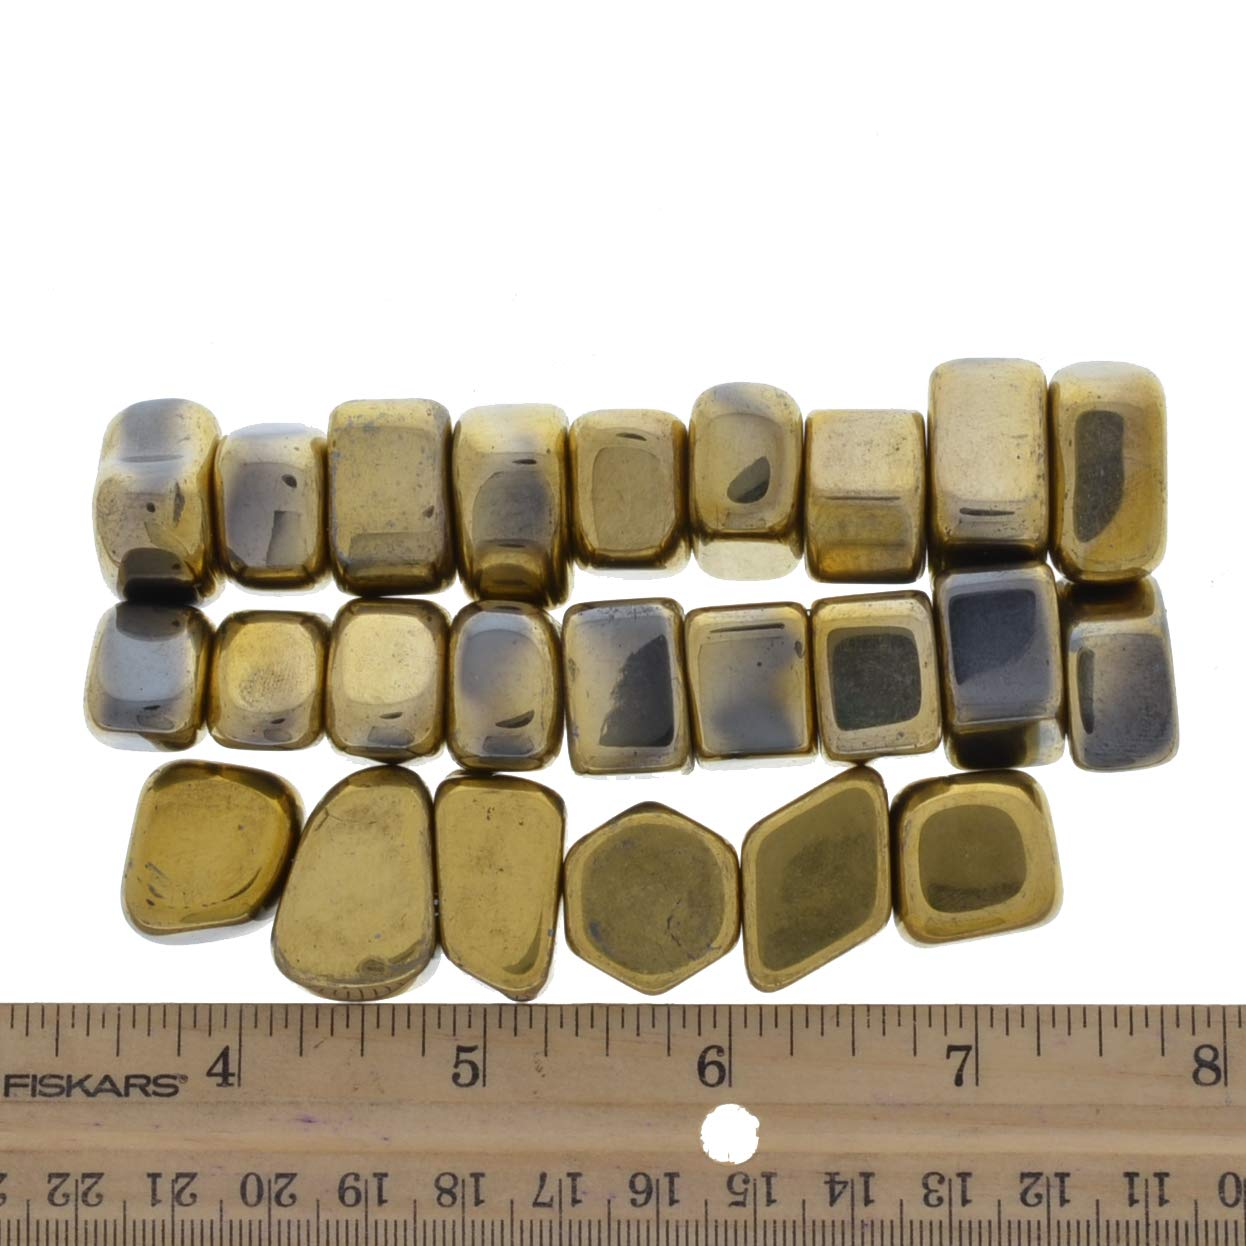 Digging Dolls: 3 lbs Small Golden Magnetic Hematite Sticky Stones - Great for Arts, Crafts, Party Favors, Party Gifts, Refrigerator Magnets and More! by Digging Dolls (Image #2)